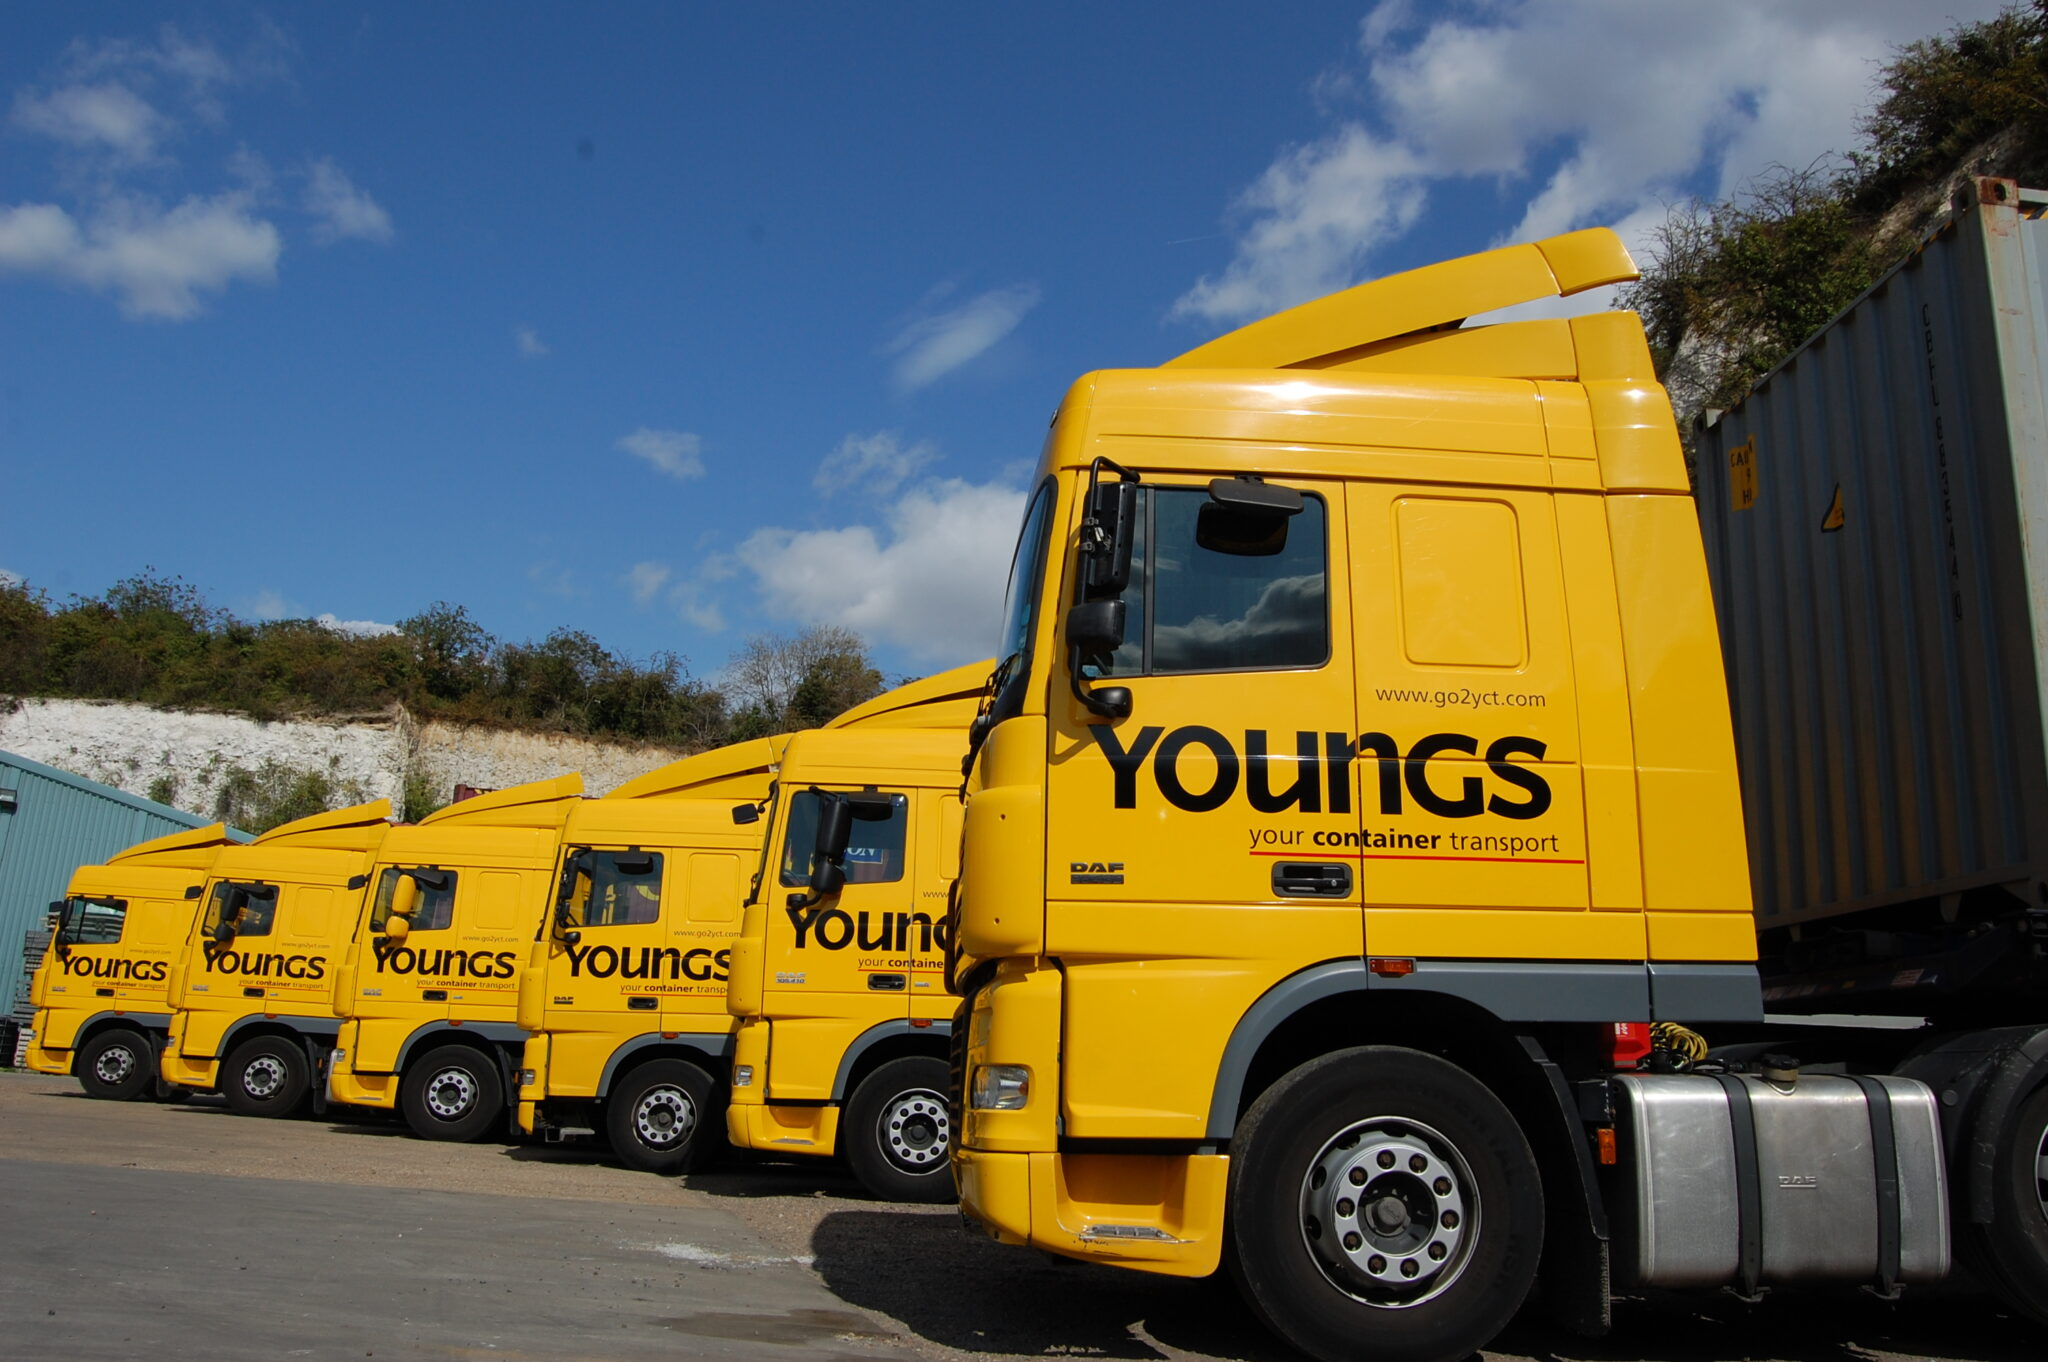 Youngs Transport and Logistics